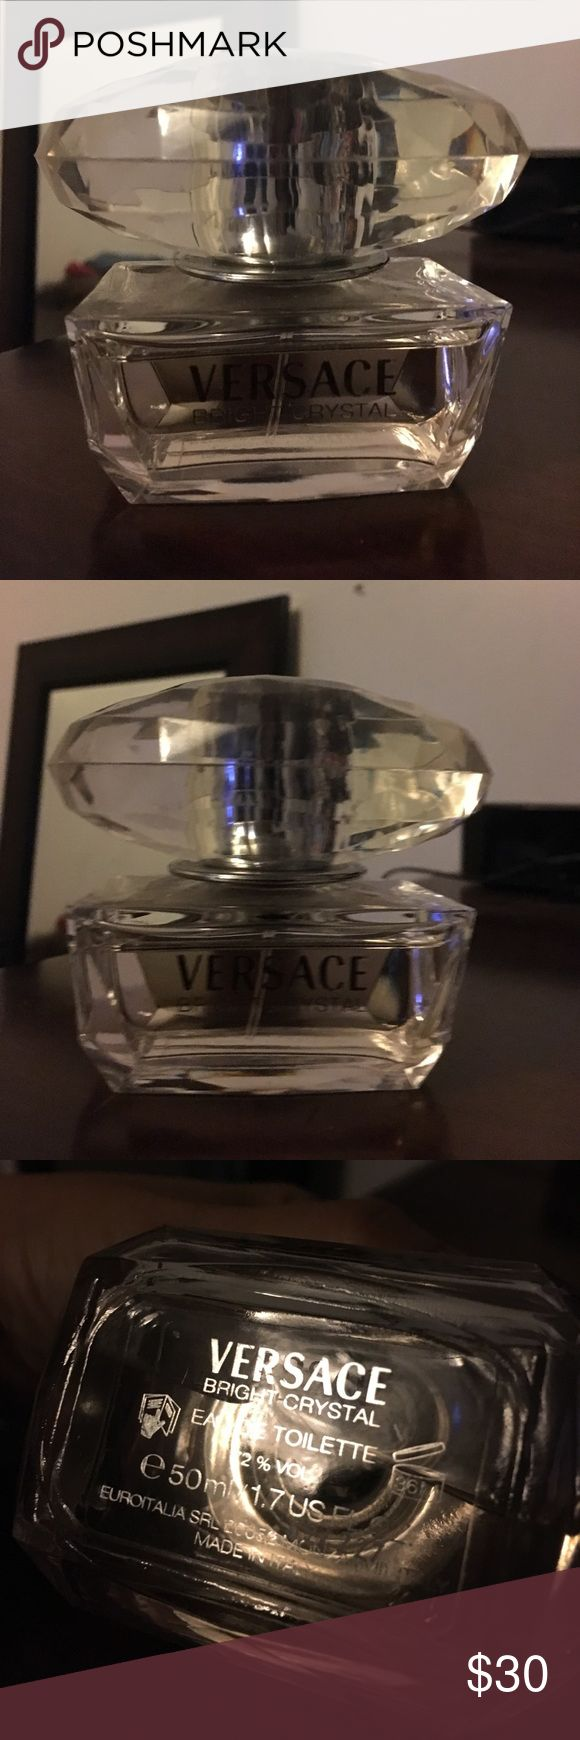 Versace Bright Crystal Perfume 95% full Versace Other